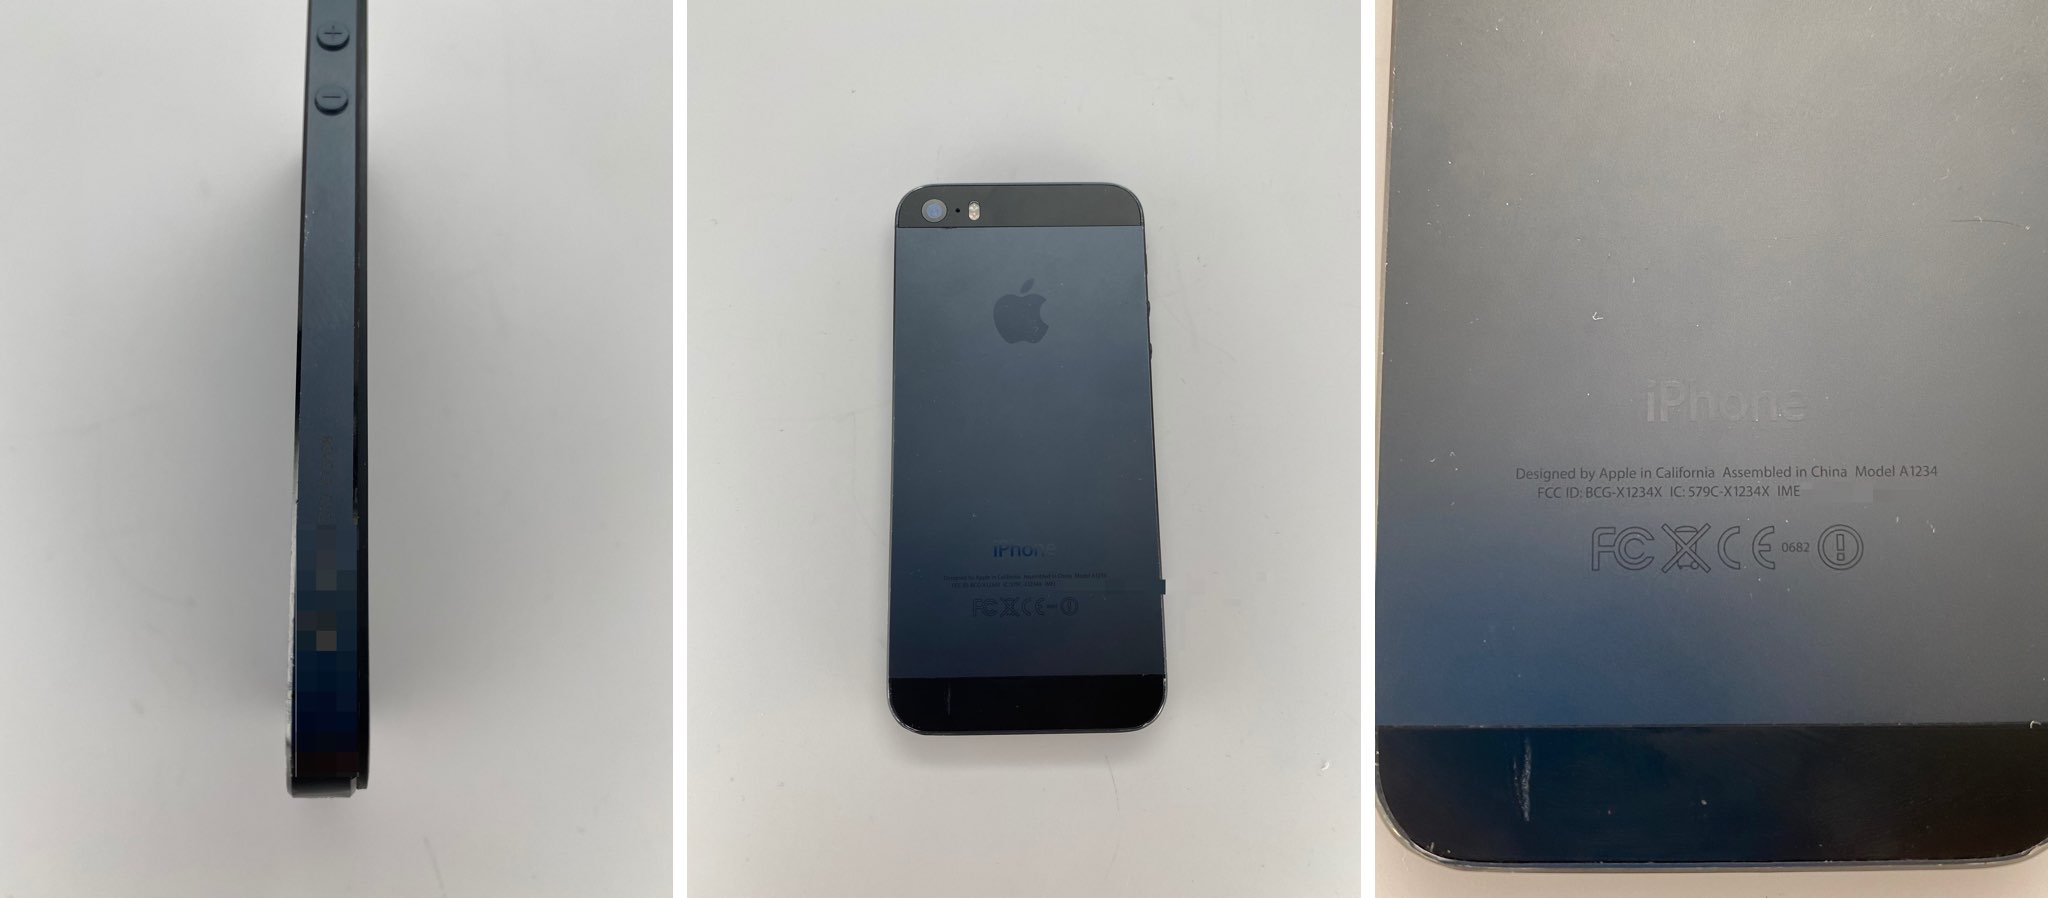 Photographs of an iPhone 5s prototype in an unreleased Black and Slate color, concealed in a stealth case